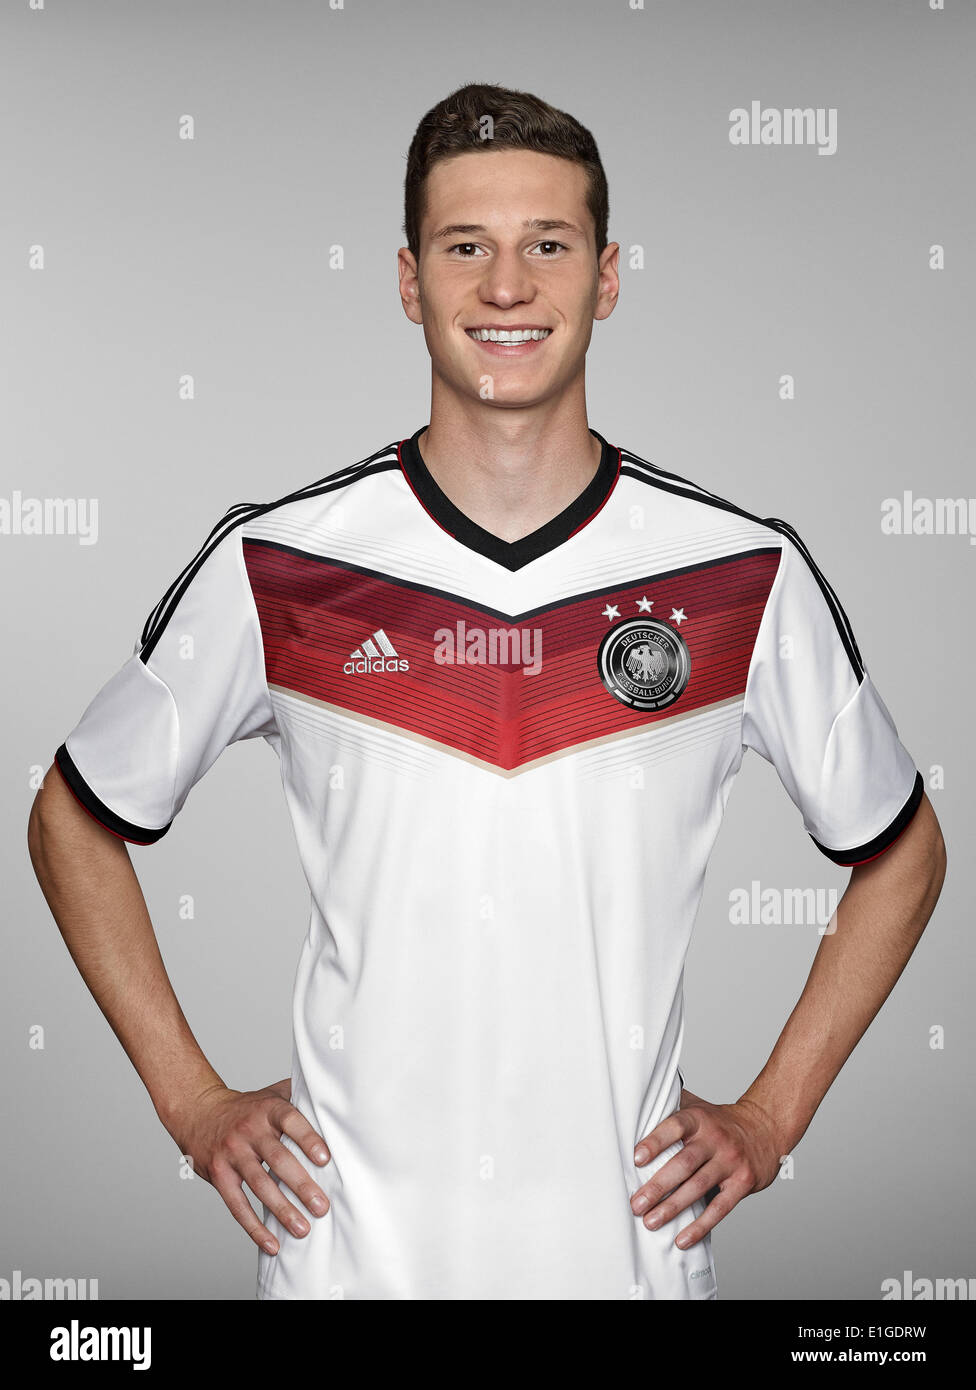 FIFA World Cup 2014 - photocall Team Germany, 24 May 2014 in Passeier, Italy: Julian Draxler. Photo credit: Bongarts/Getty Images/German Football Association/dpa (editorial use only) - Stock Image